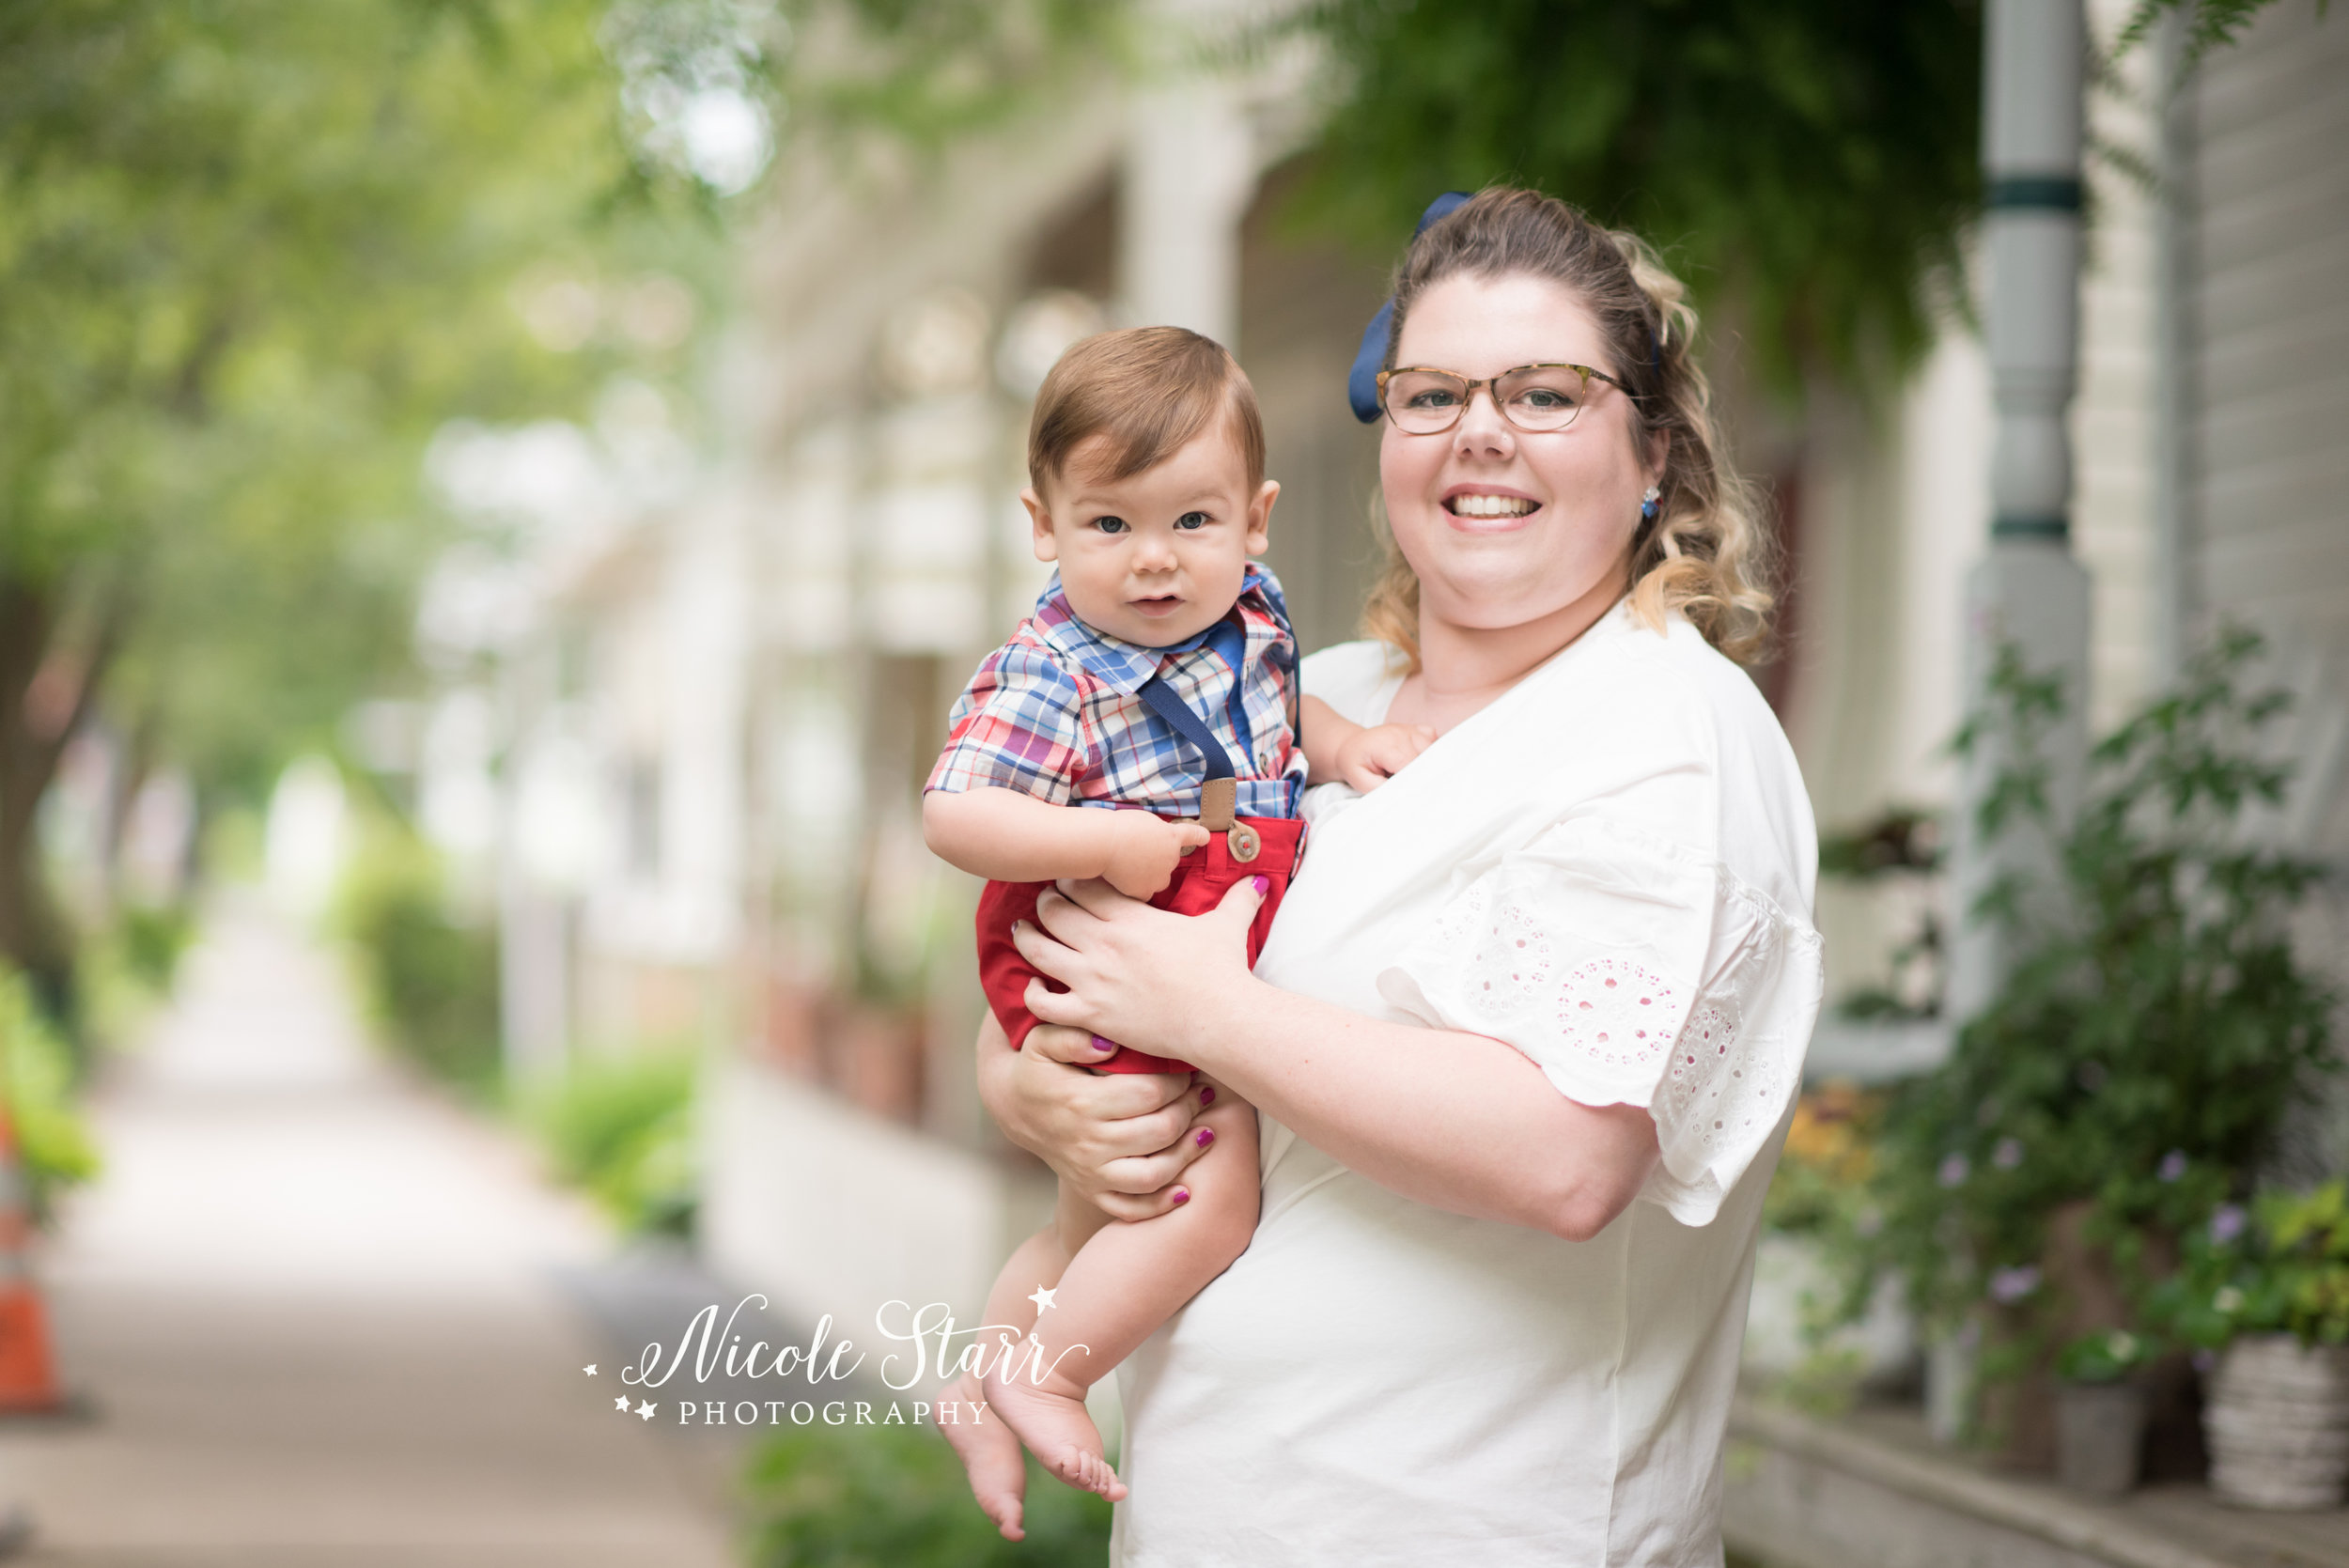 Nicole Starr Photography | Saratoga Springs Family Photographer | Boston Family Photographer | Upstate NY Family Photographer | Family Photographe